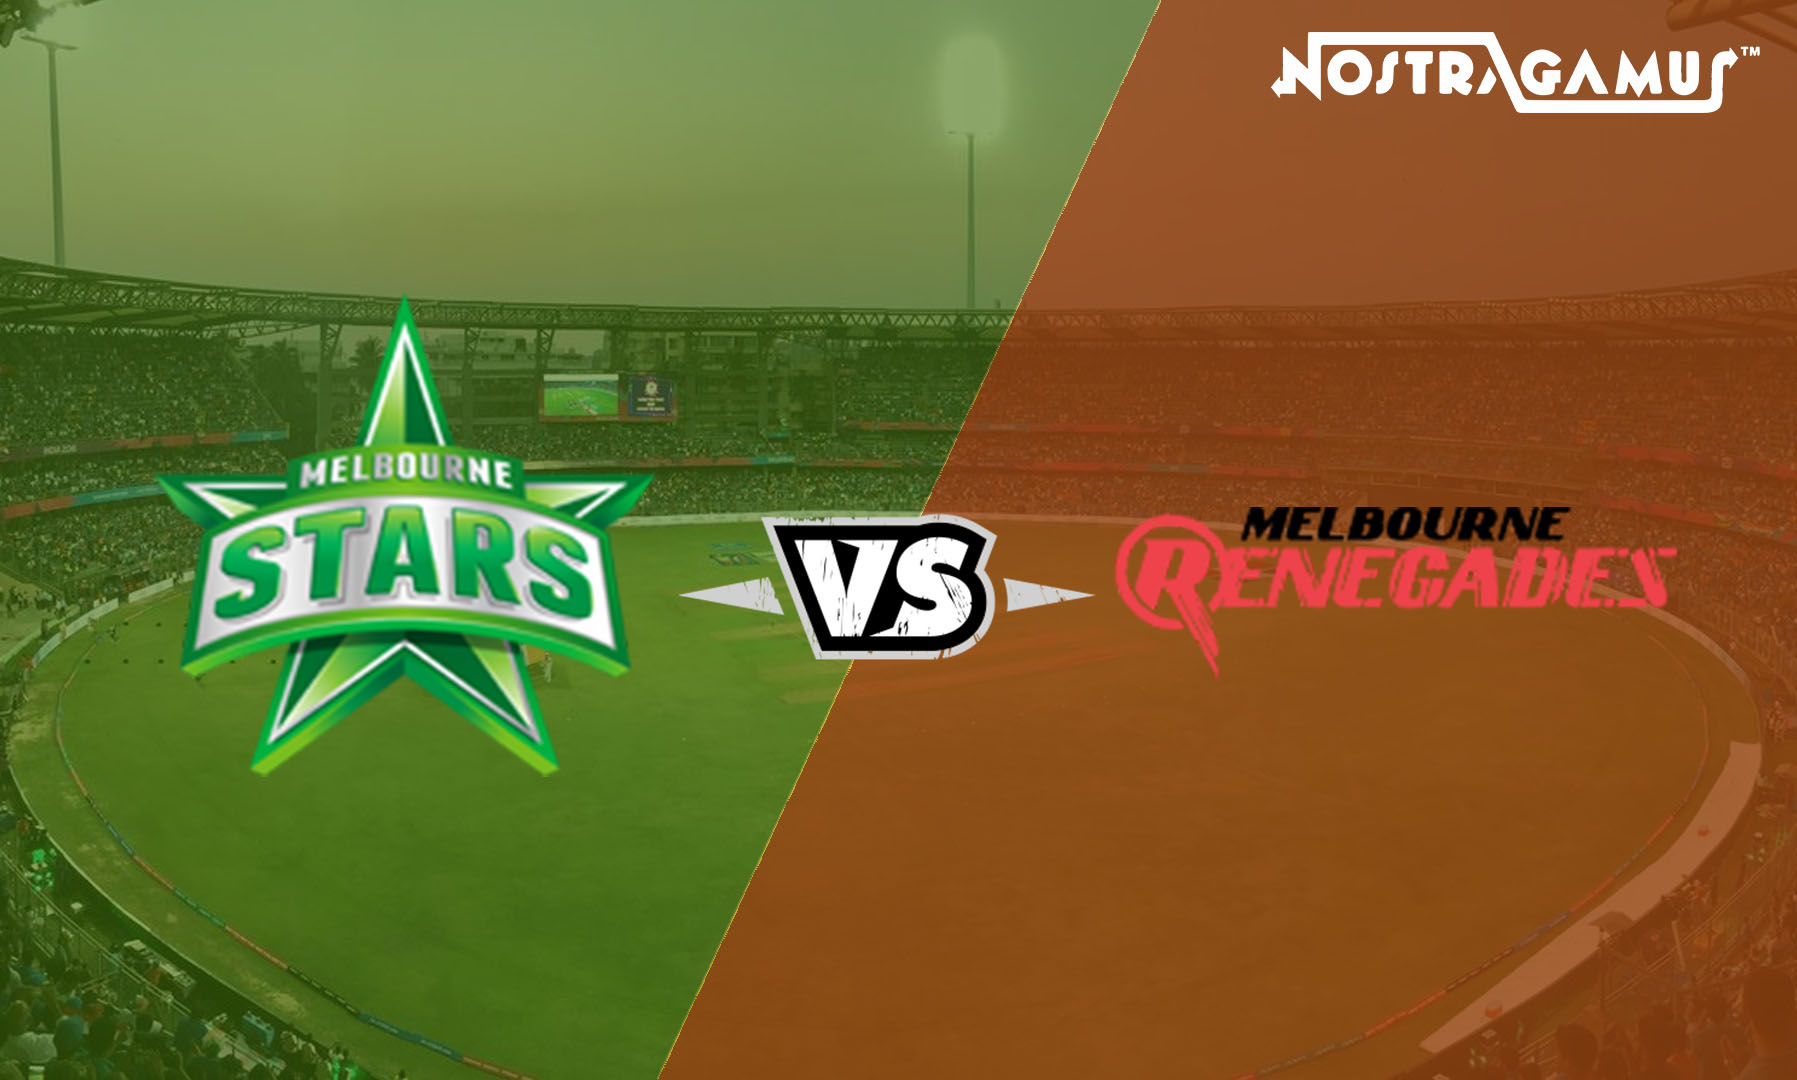 BBL 2019 Match Prediction: Melbourne Stars vs Melbourne Renegades